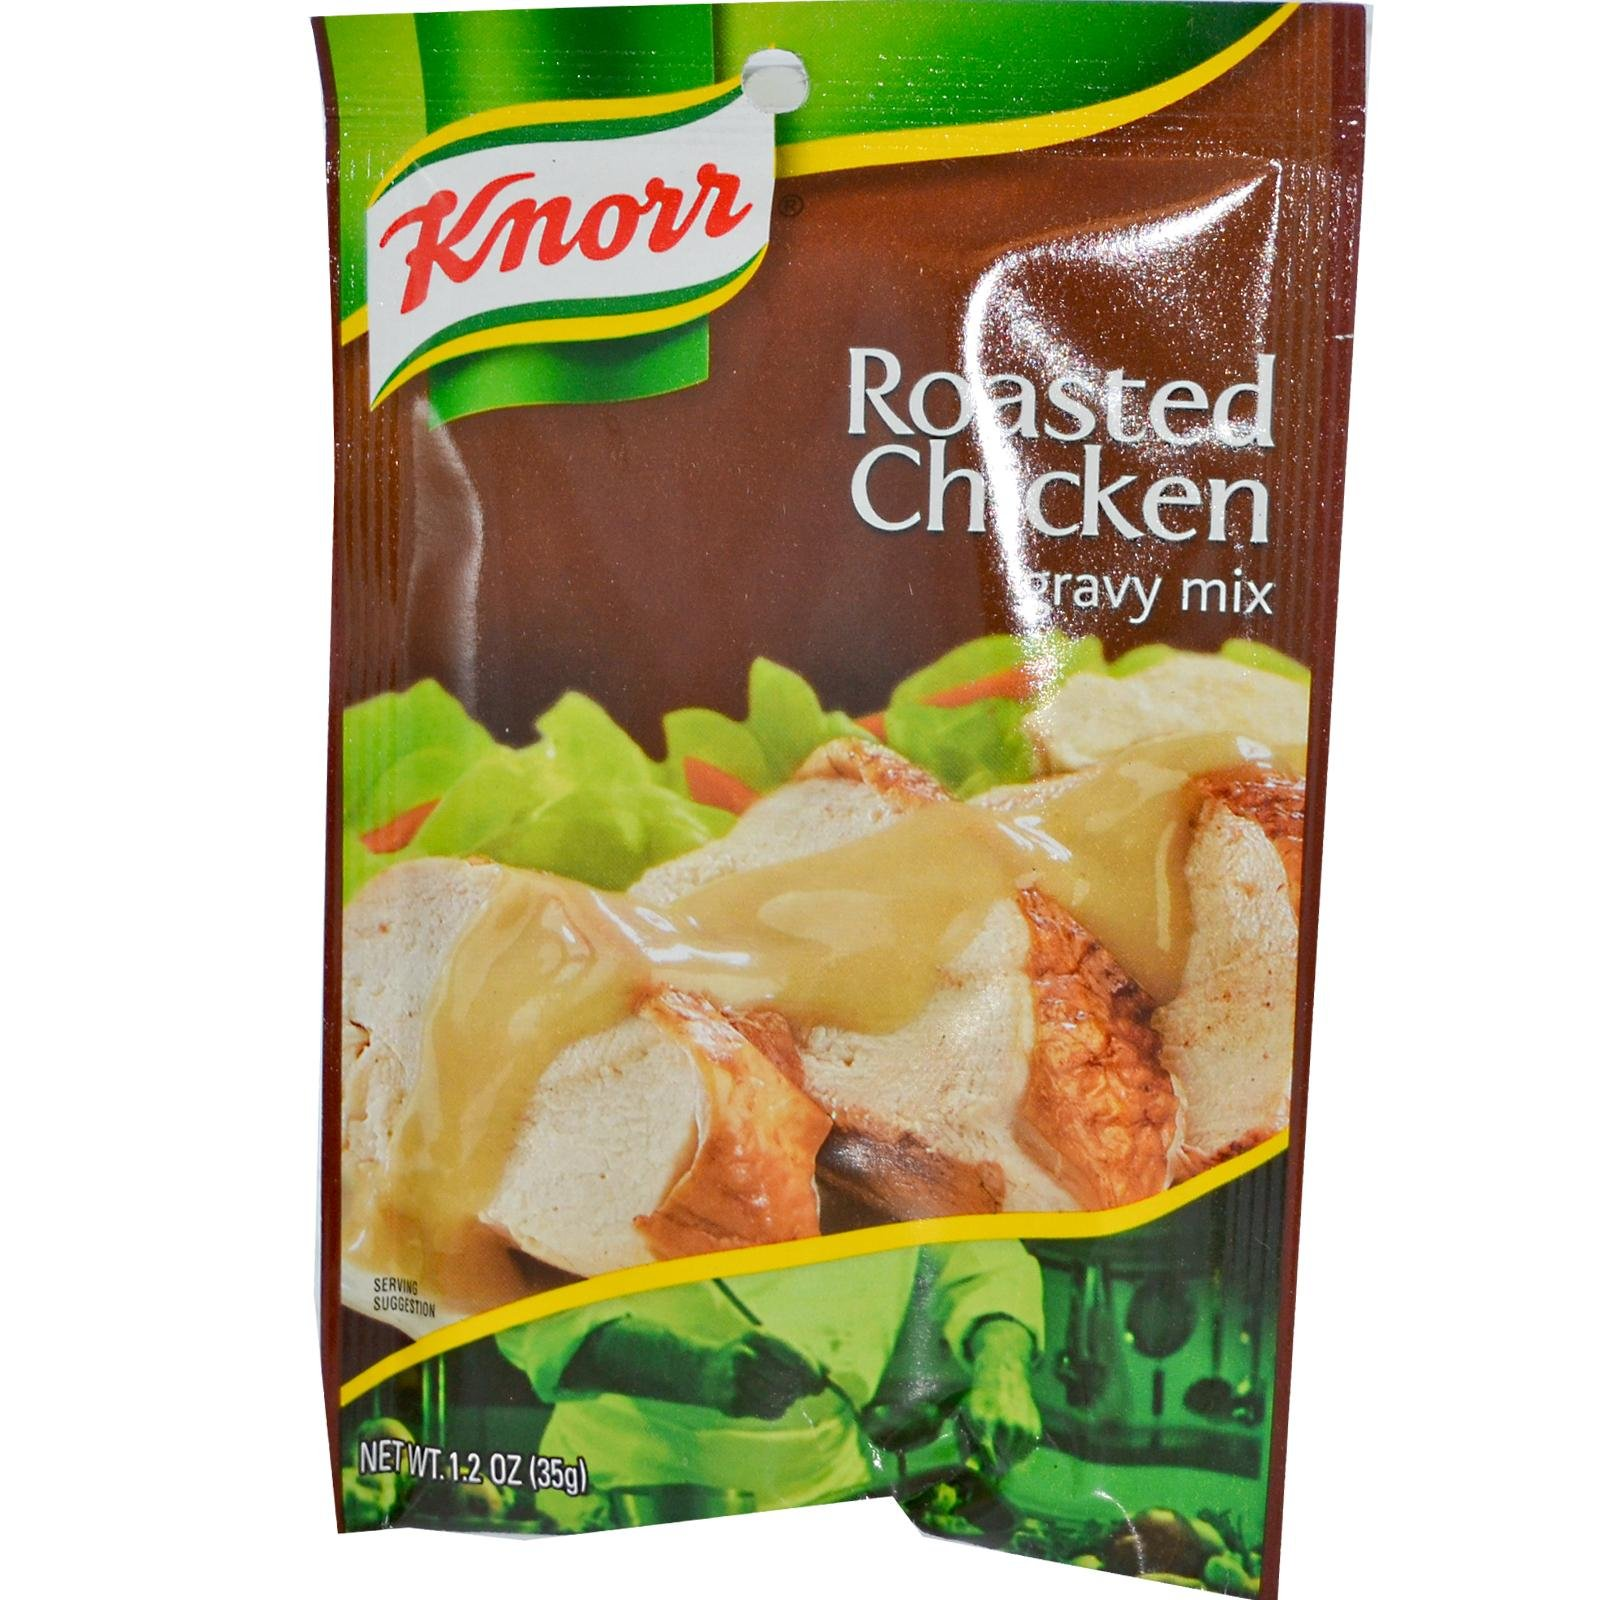 Knorr B74094 Knorr Roasted Chicken Gravy Mix -12x1.2oz by Knorr